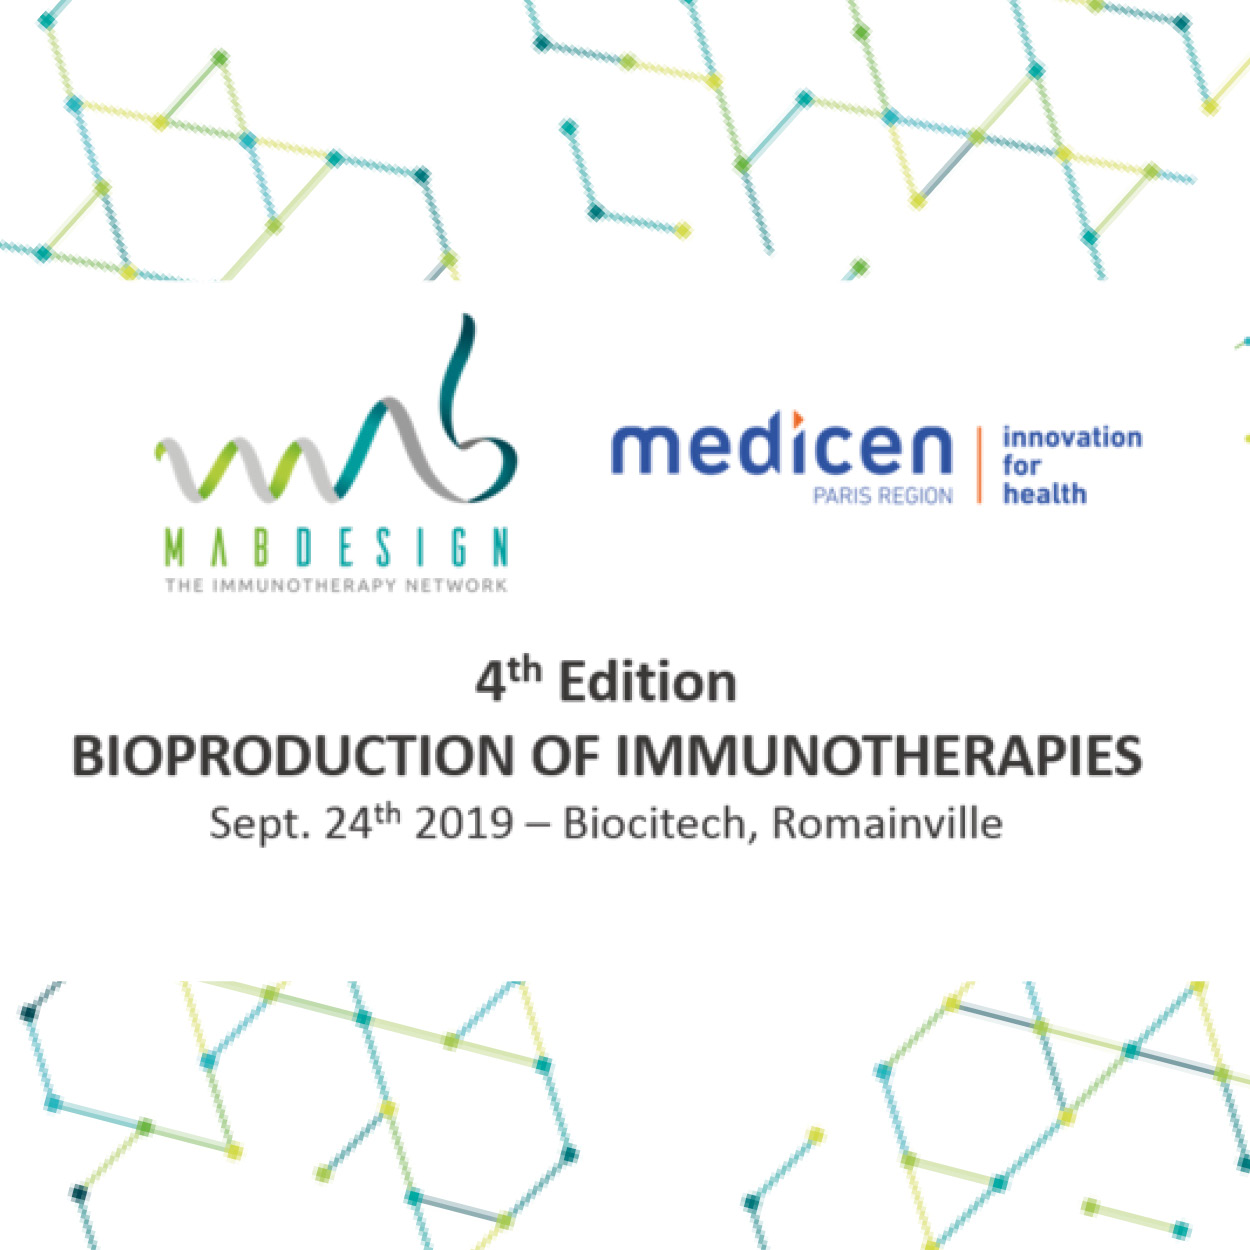 bioproduction immunotherapies logo